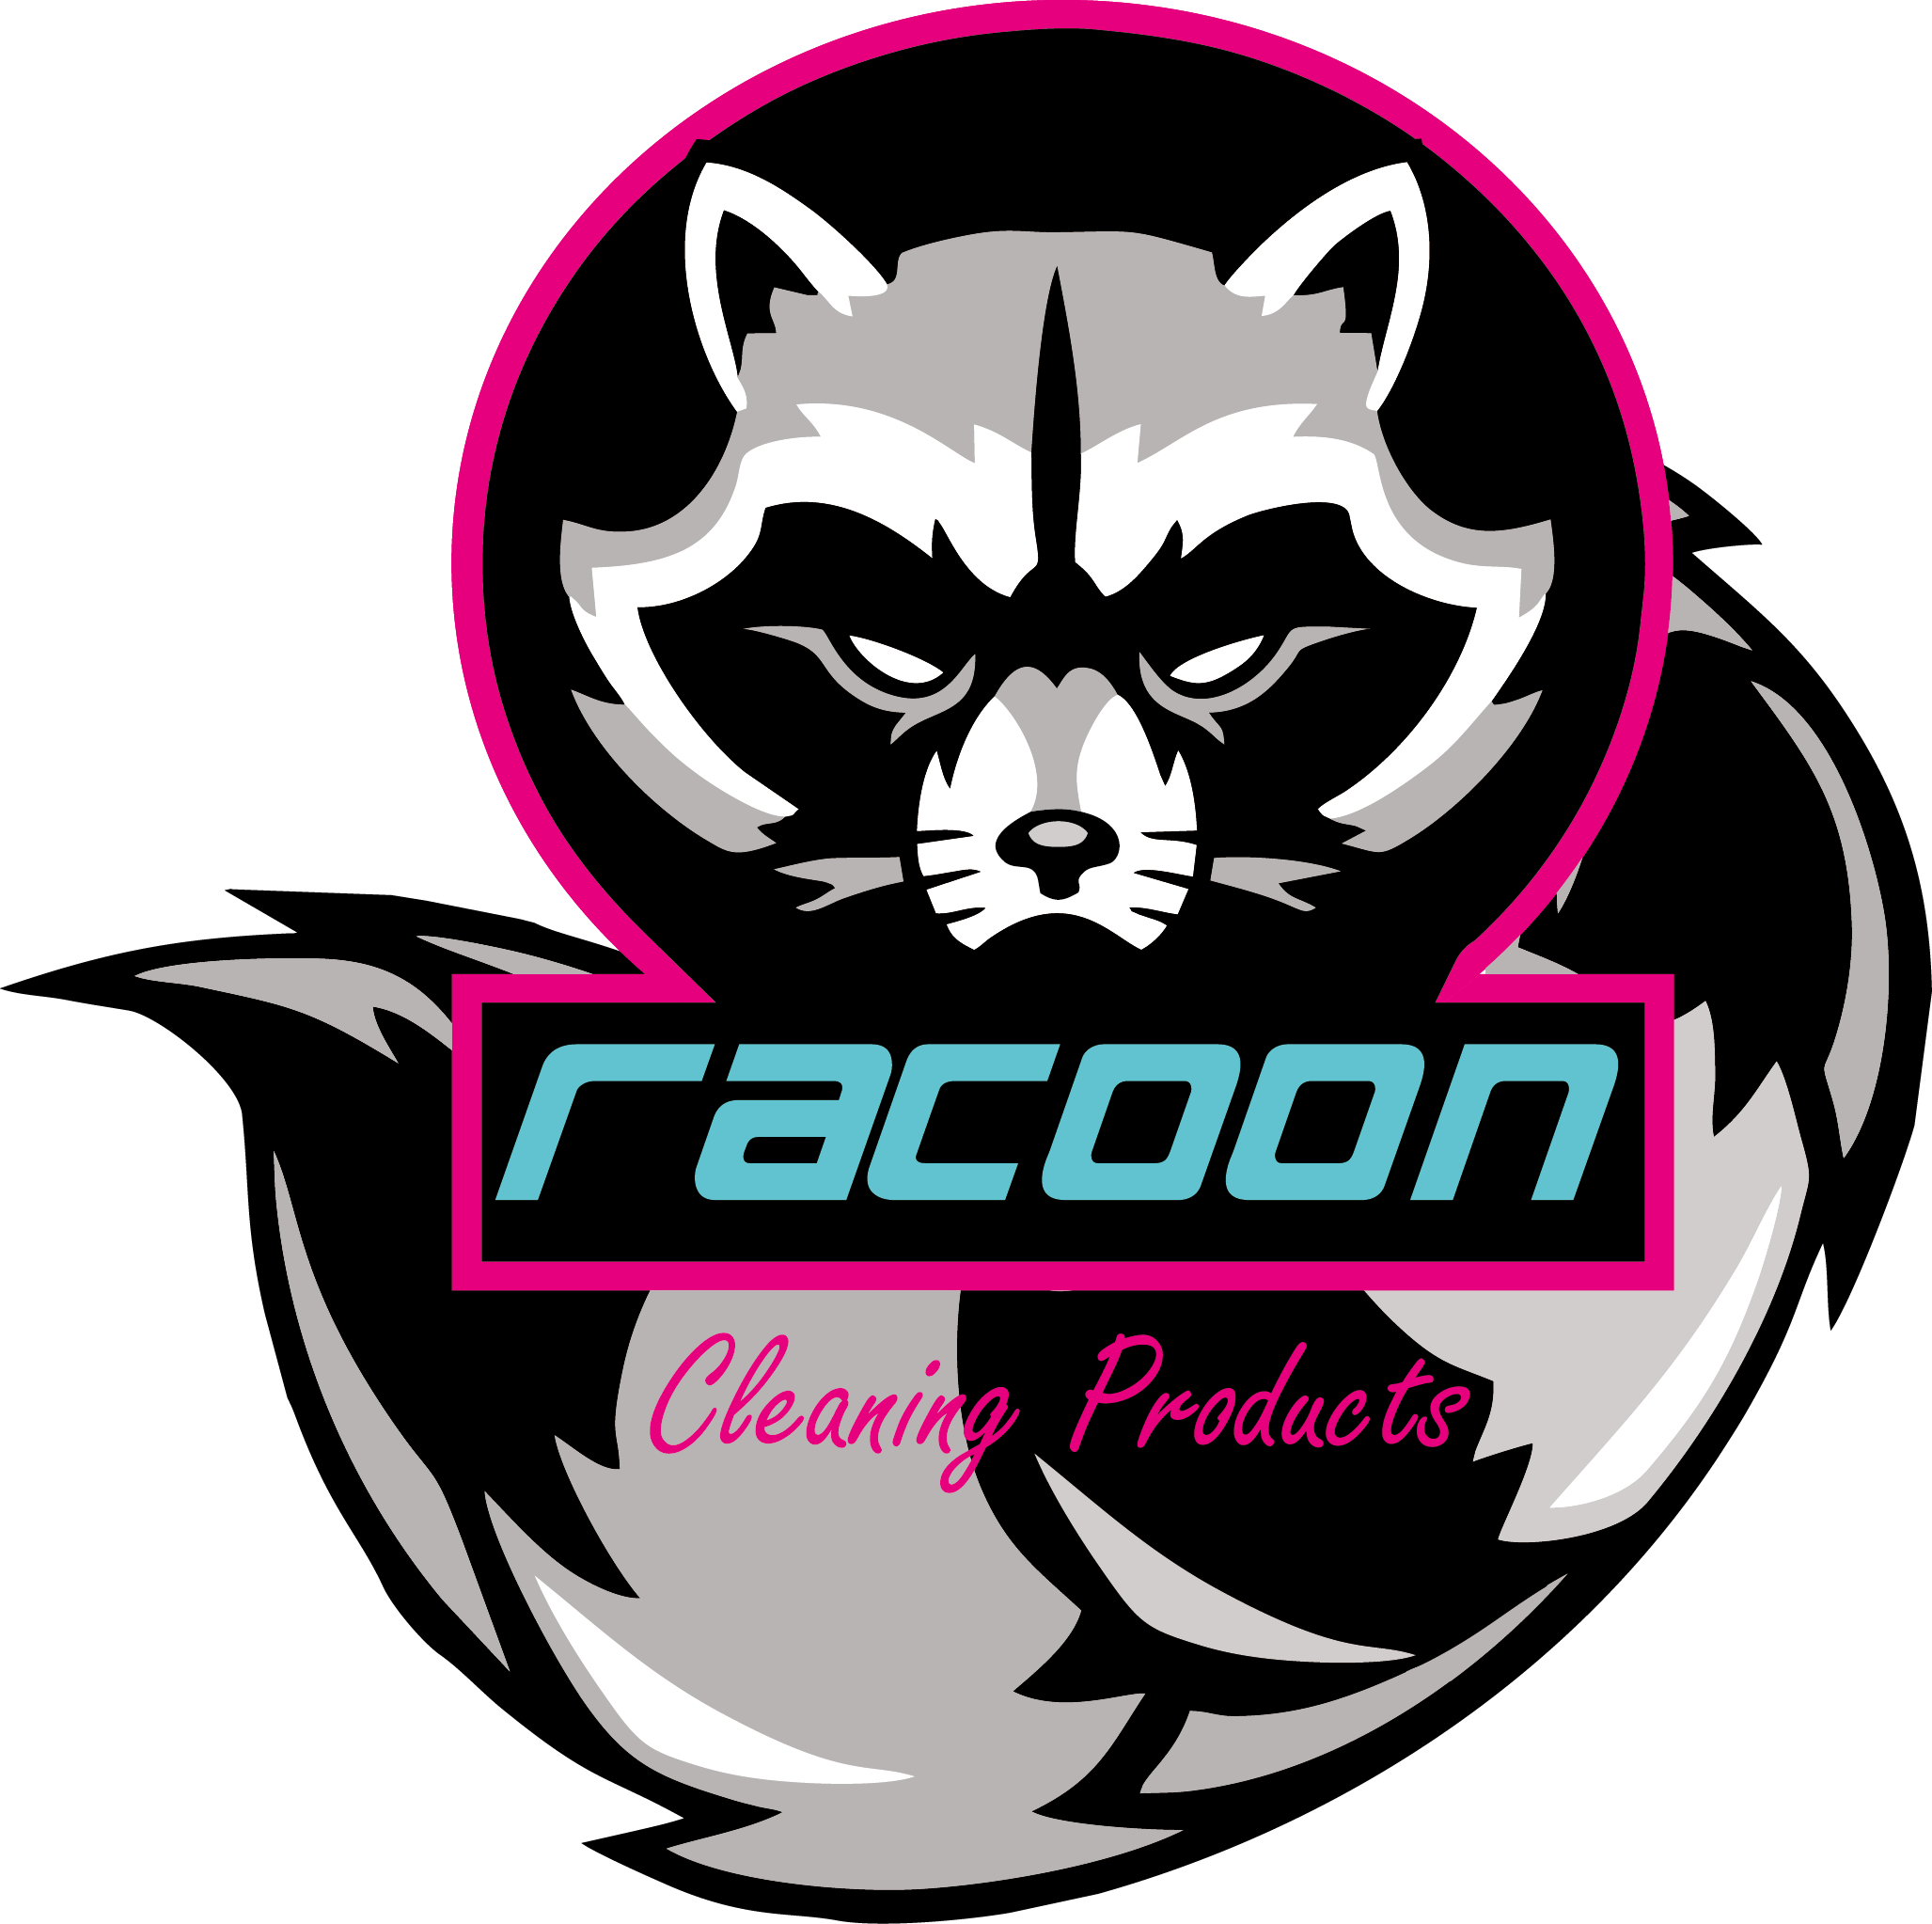 Racoon Cleaning Products